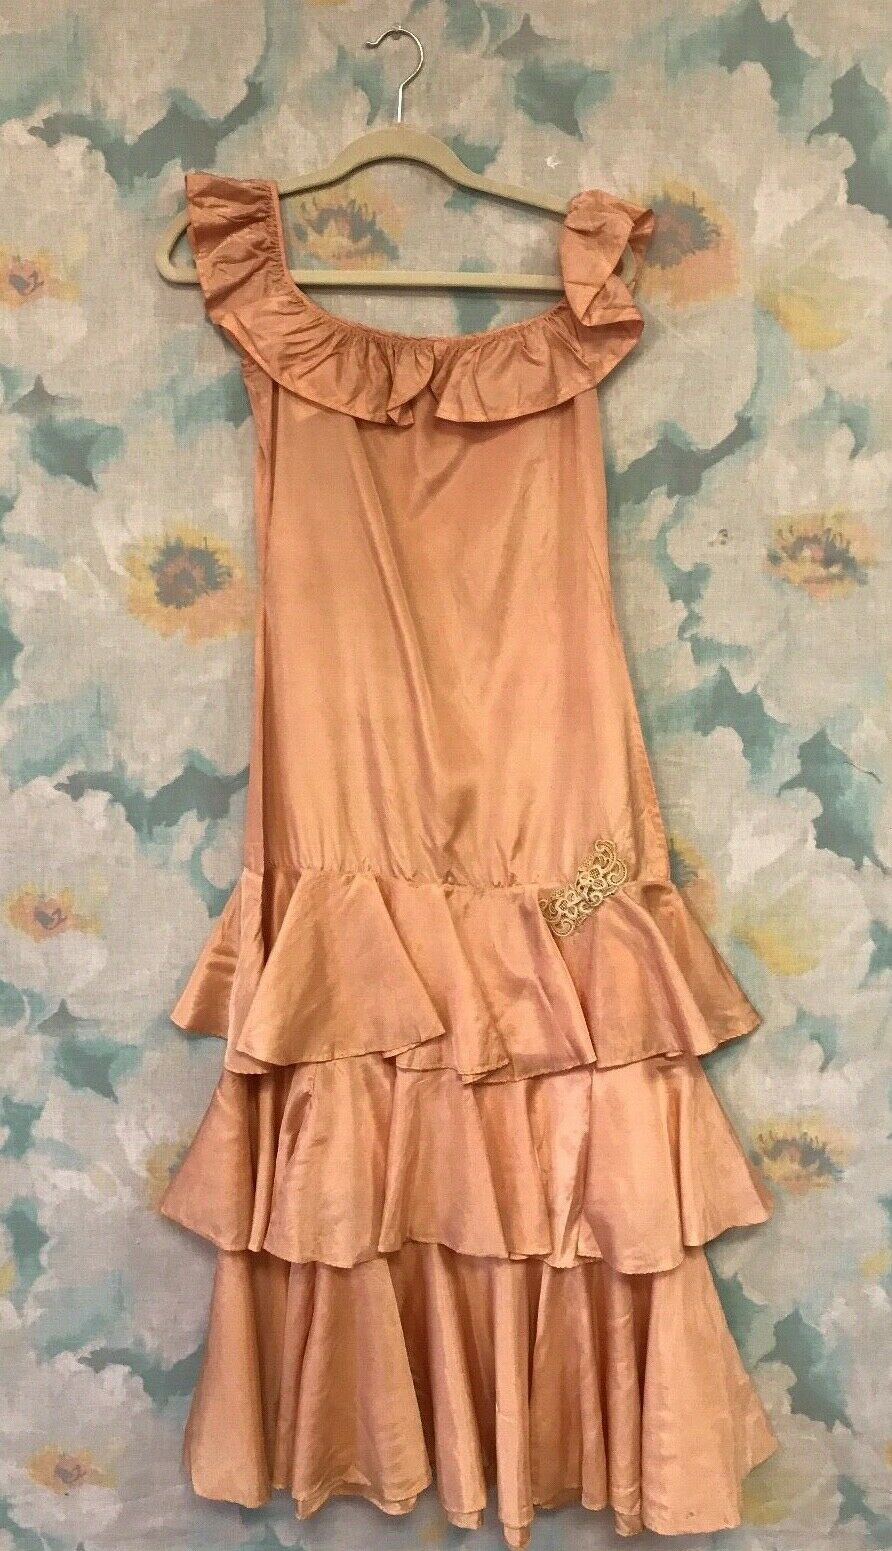 Vintage Antique 1920s Pink Silk Flapper Dress with Tiered Skirt and Lace Detail